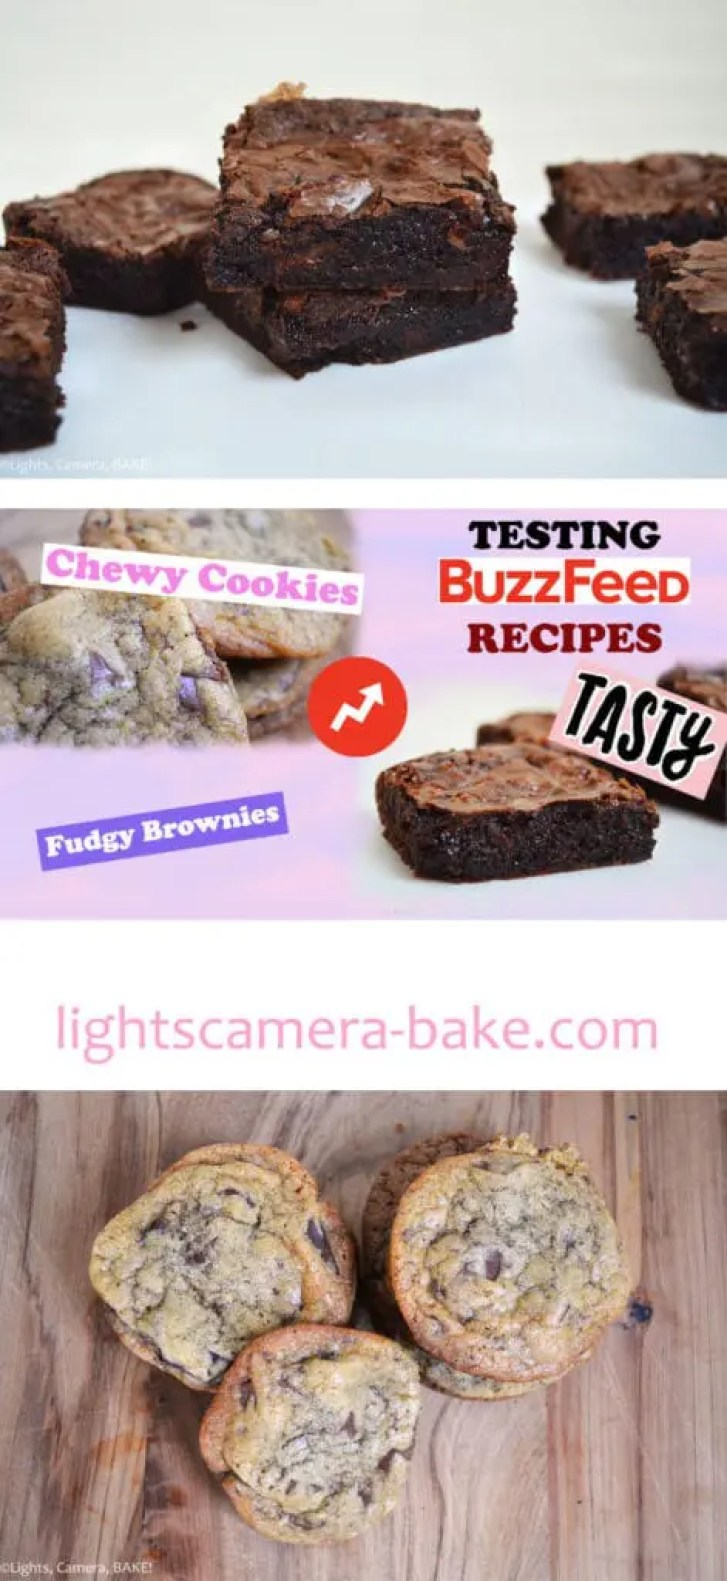 BuzzFeed's The Best Fudgy Brownies and The Best Chewy Chocolate Chip Cookies Taste Test on Lights, Camera, BAKE! I tried the viral Tasty's videos to see if the recipes for these brownies and cookies really were the best...